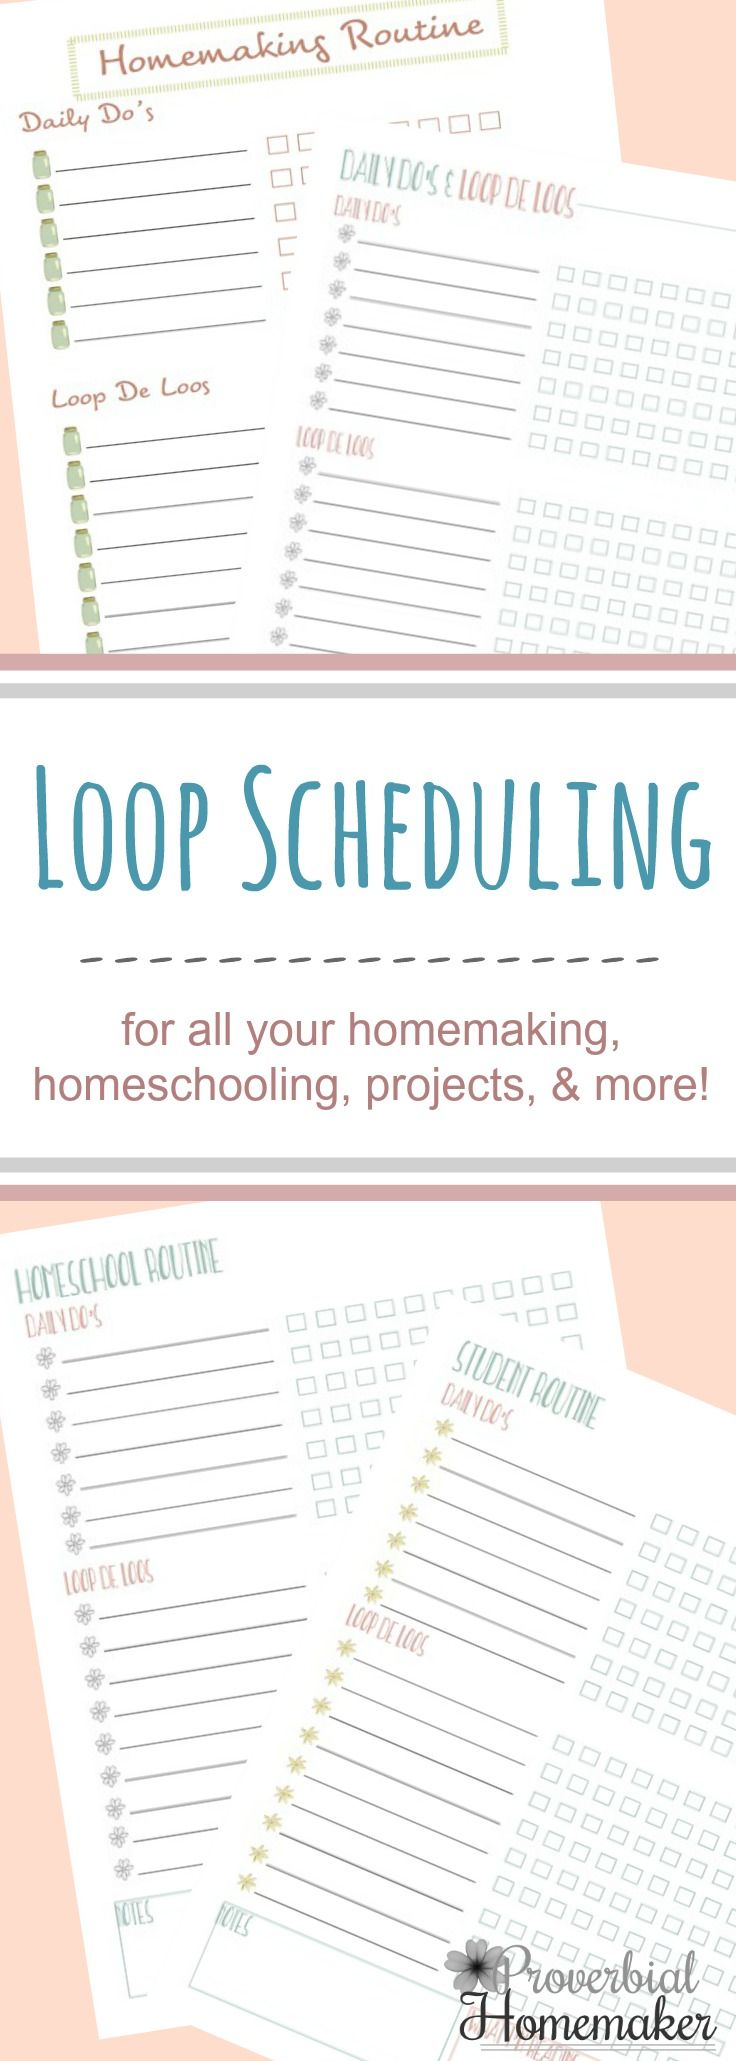 This is a picture of Epic Loop Schedule Printable